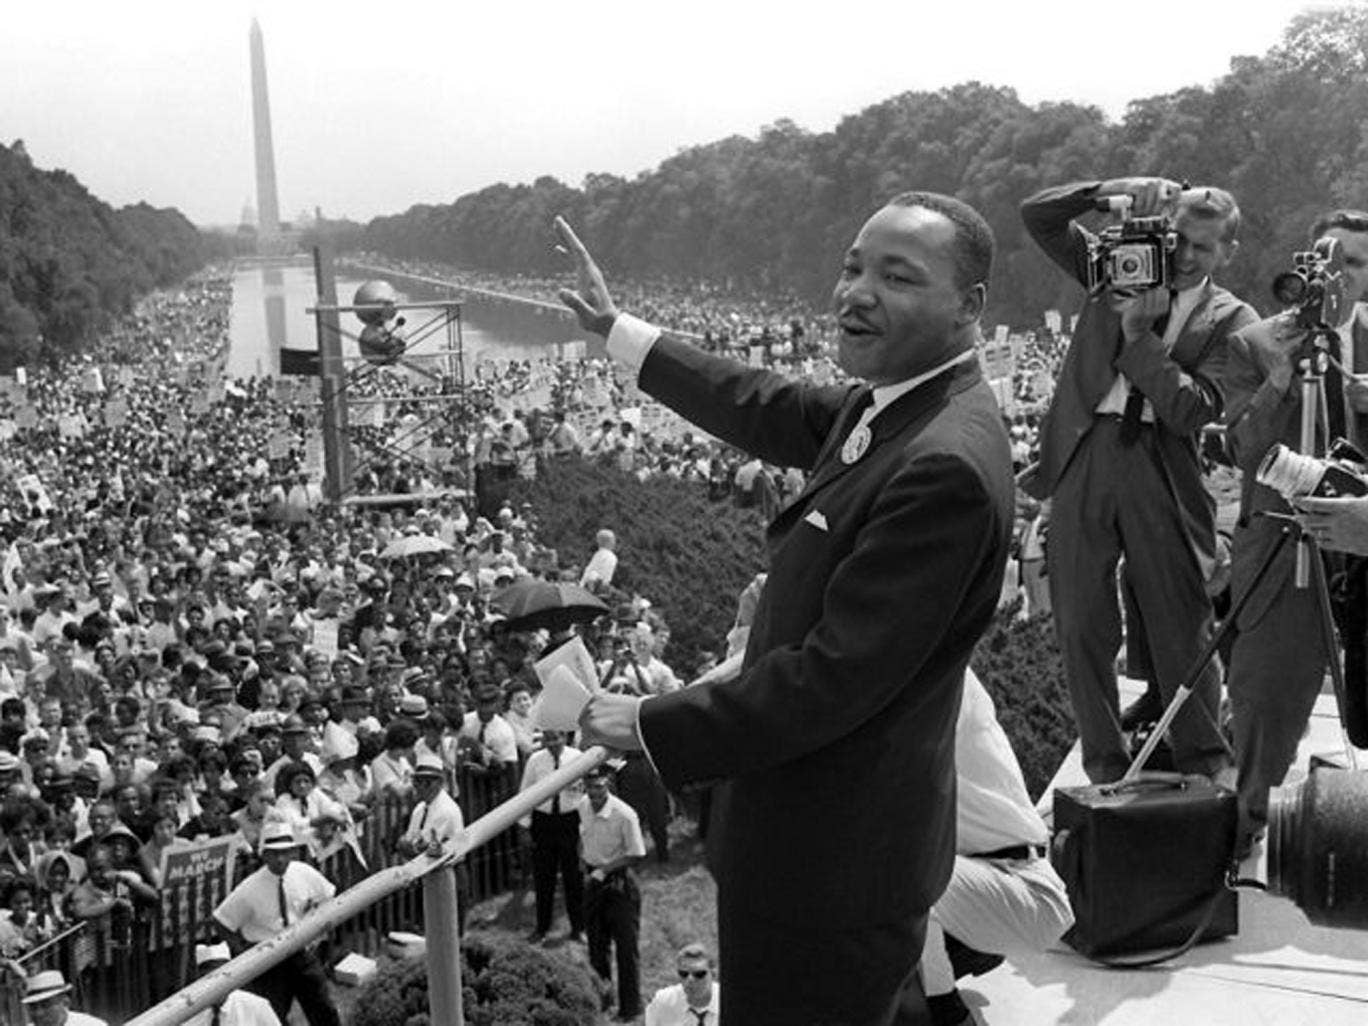 Martin Luther King Jr at the Lincoln Memorial in 1963